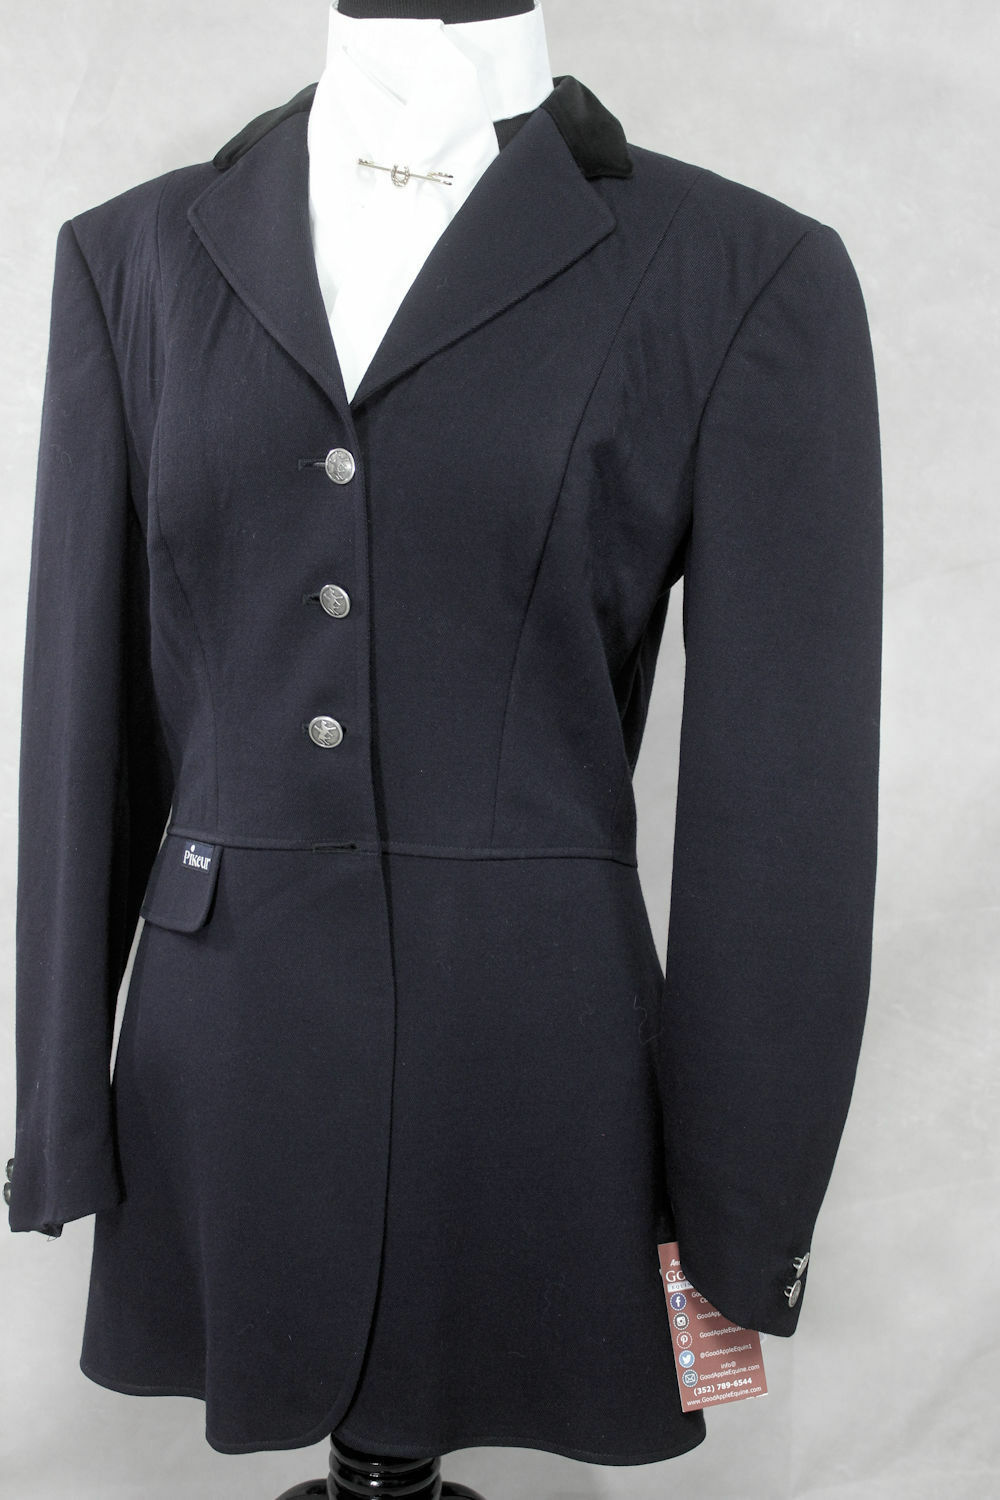 Pikeur Navy Dressage Coat, Size US 10L Ref   1624-13  wholesale cheap